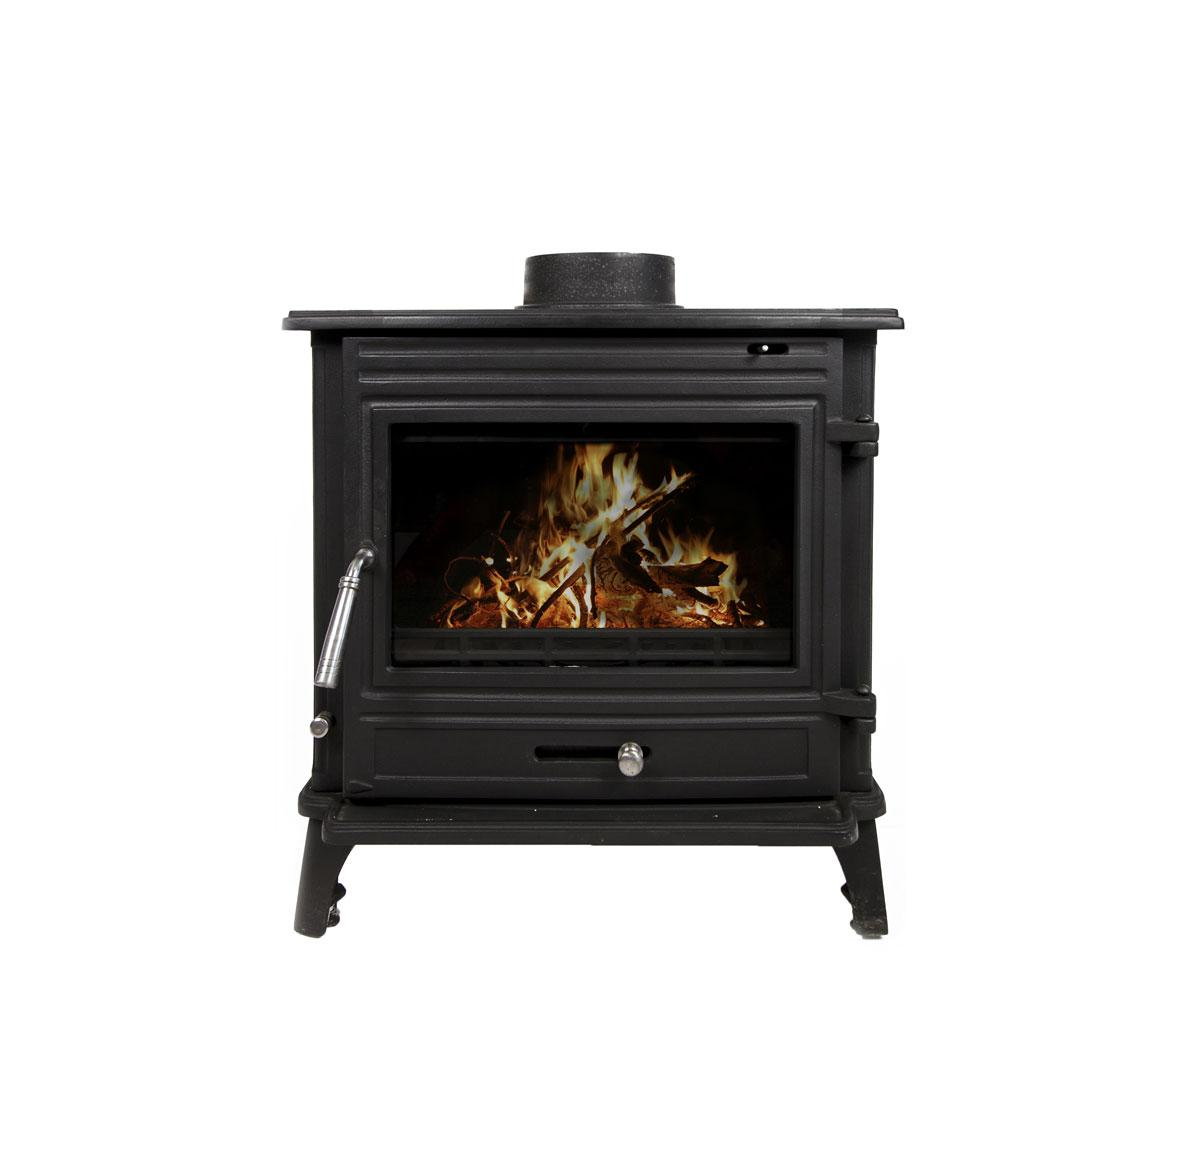 closed combustion fireplaces for sale in south africa